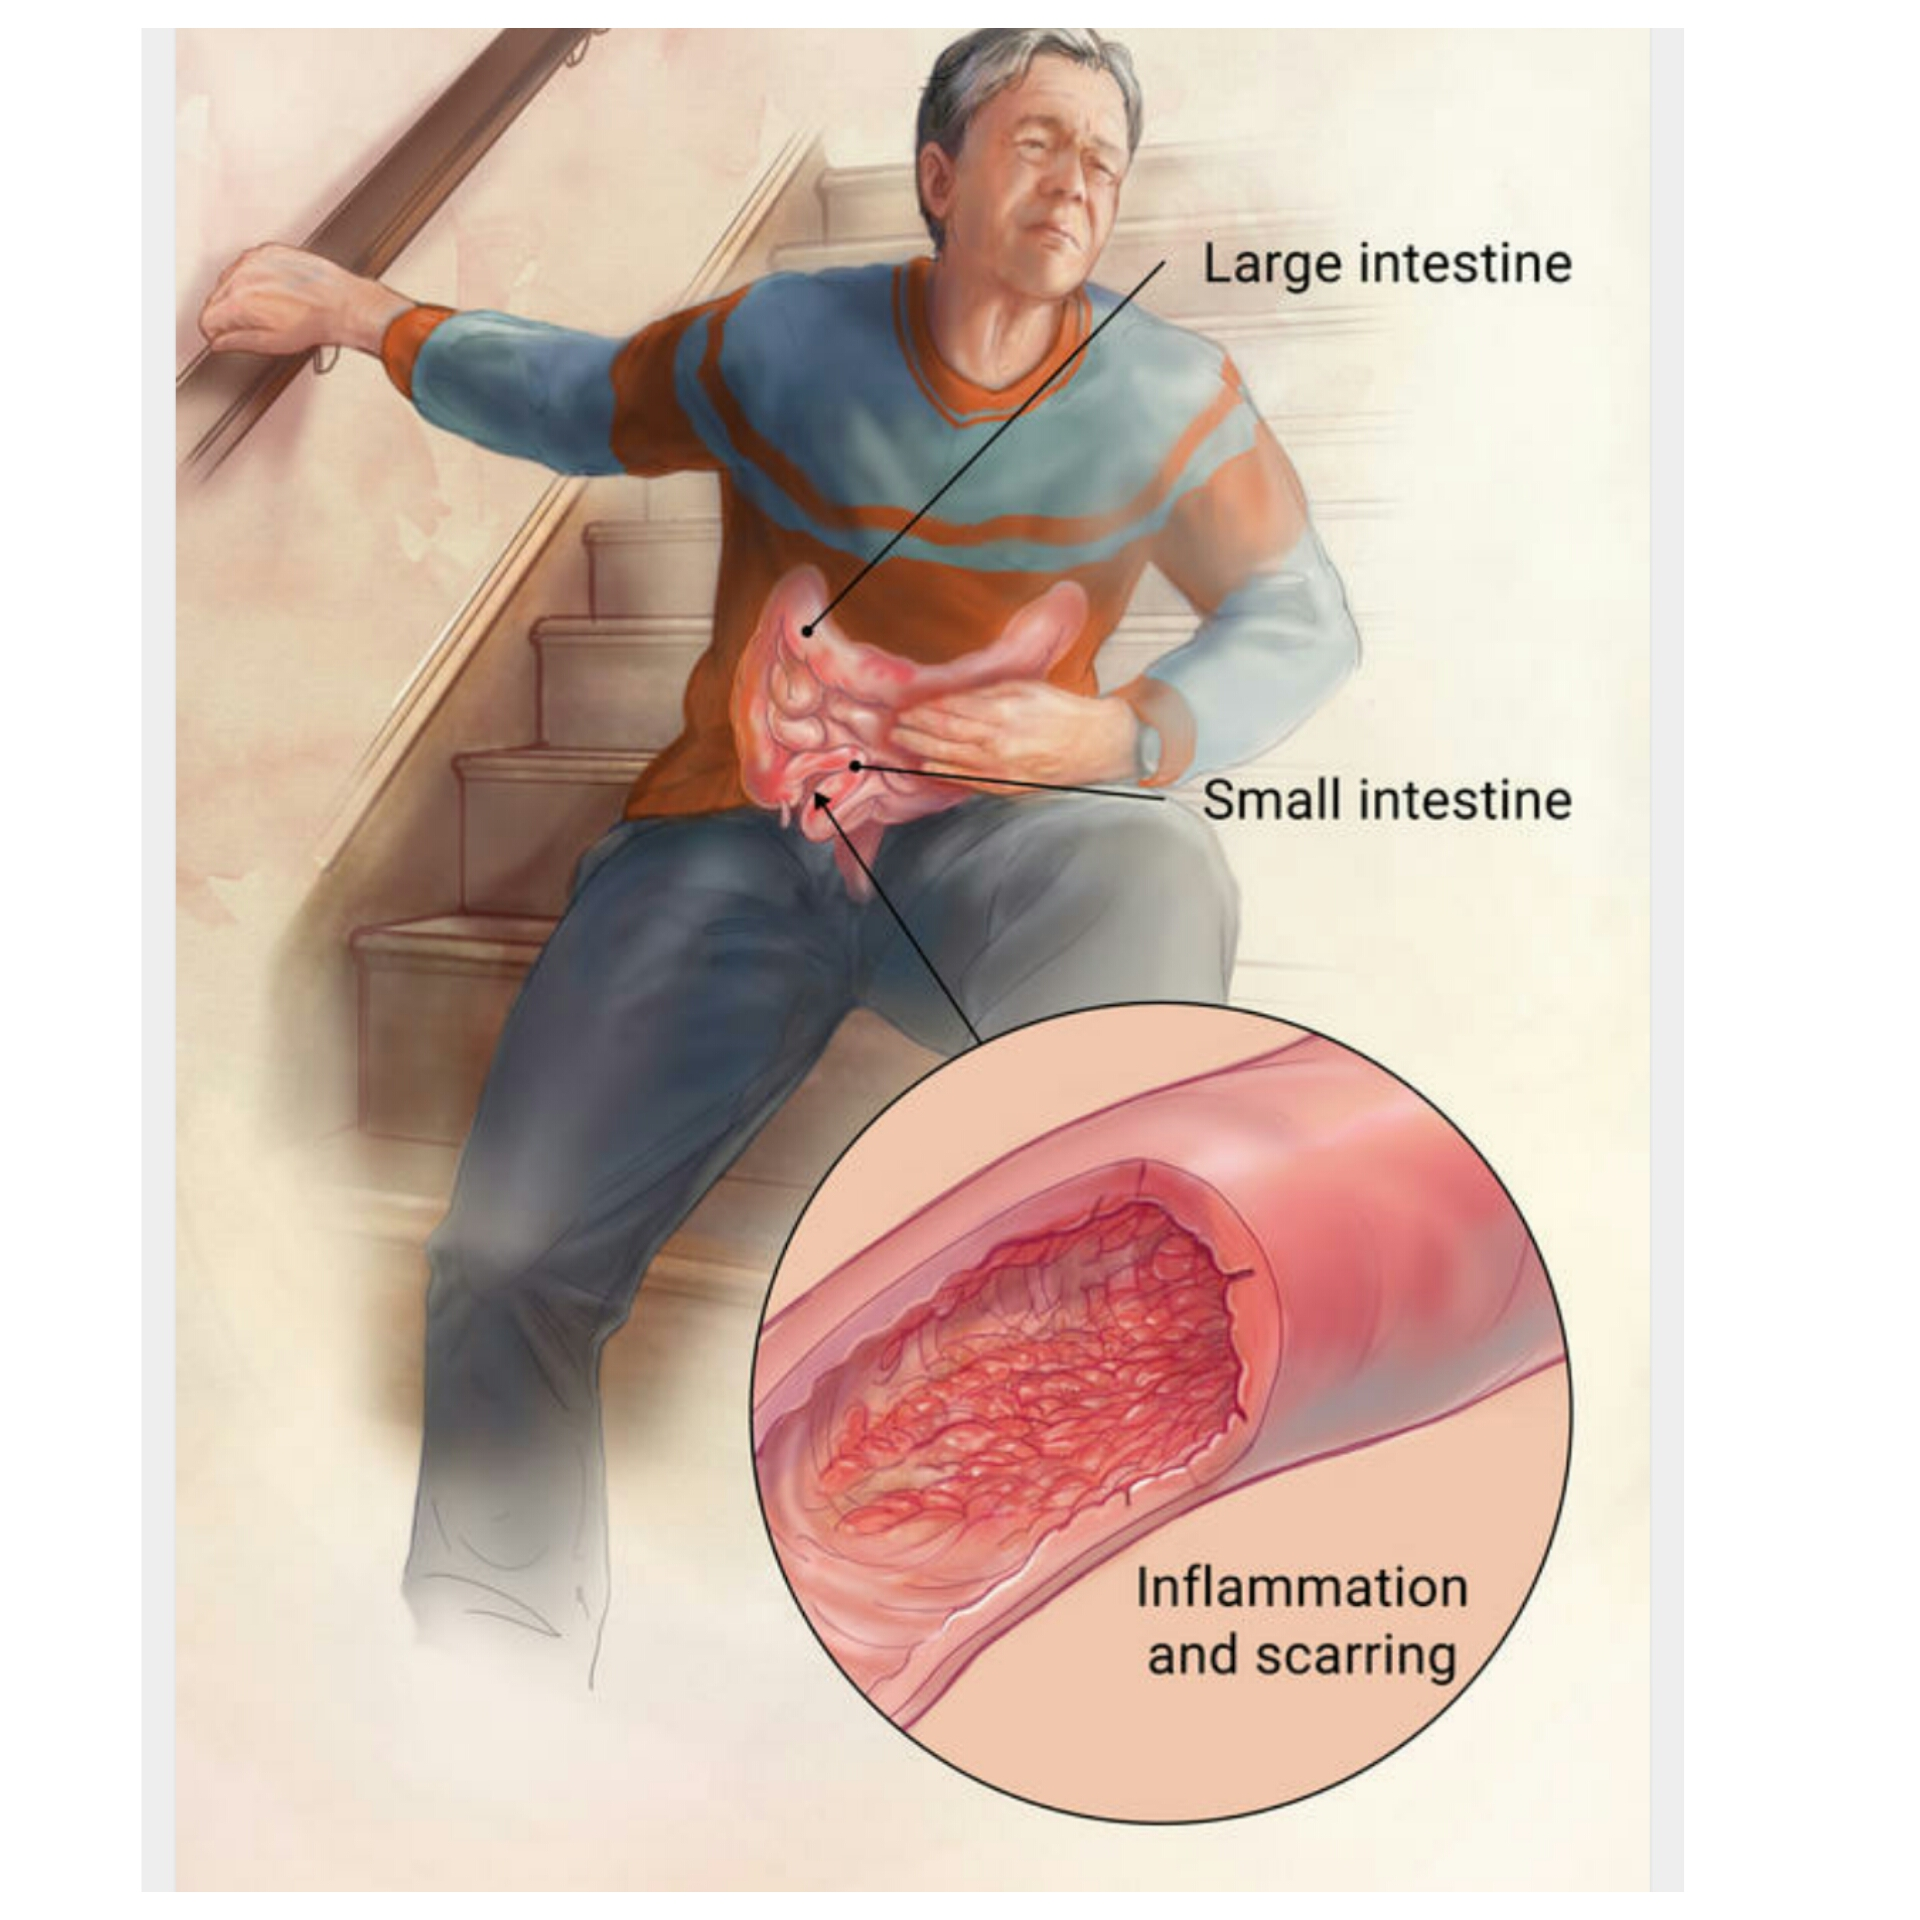 crohn's disease also called: ileitis |